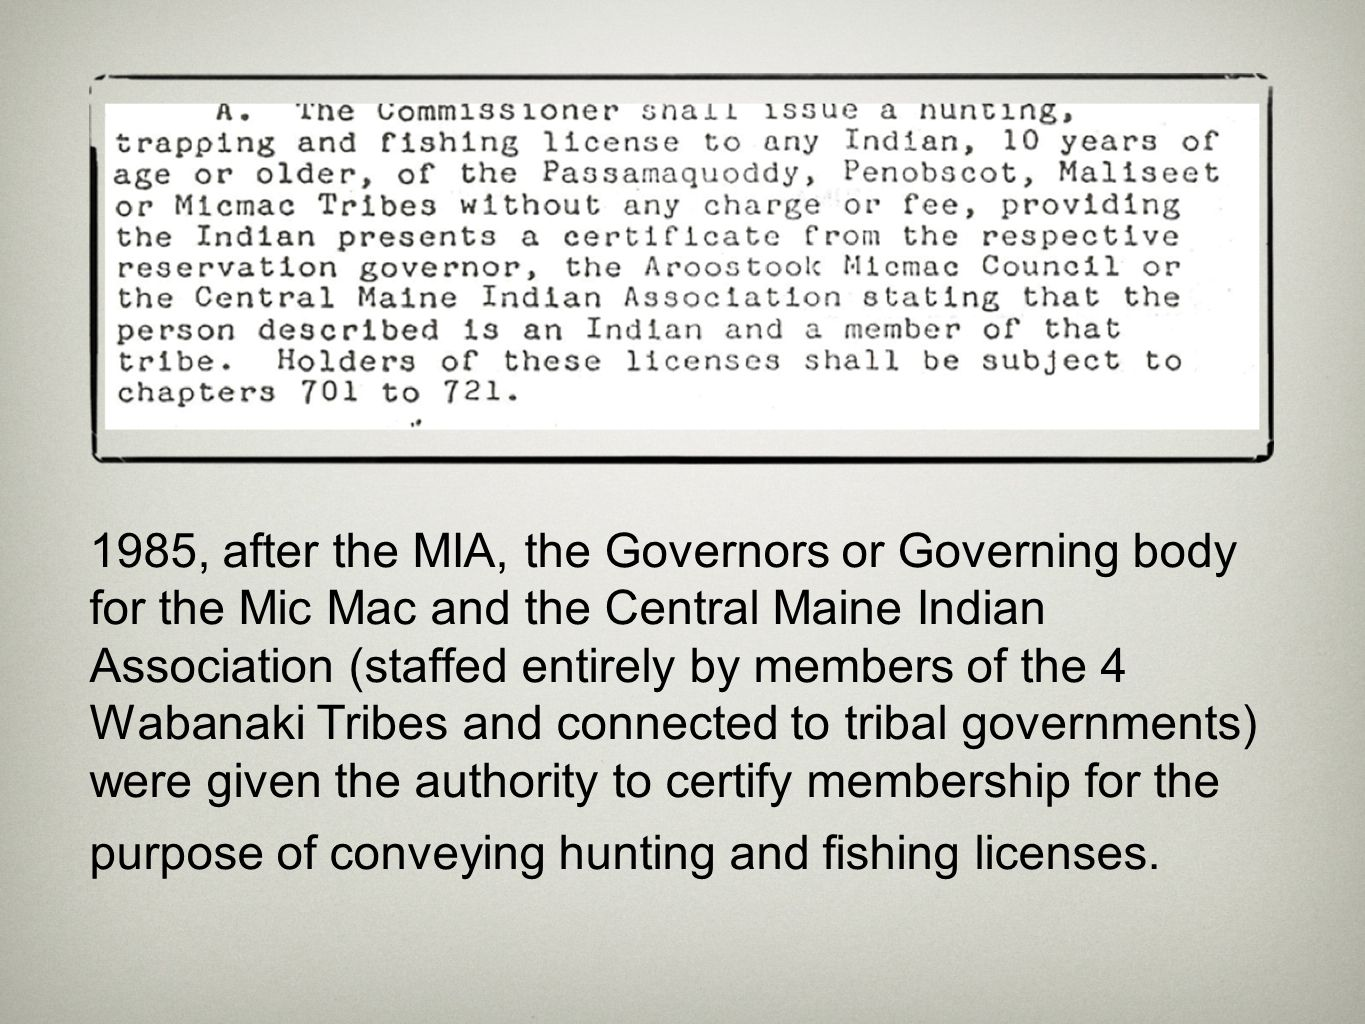 1985, after the MIA, the Governors or Governing body for the Mic Mac and the Central Maine Indian Association (staffed entirely by members of the 4 Wabanaki Tribes and connected to tribal governments) were given the authority to certify membership for the purpose of conveying hunting and fishing licenses.